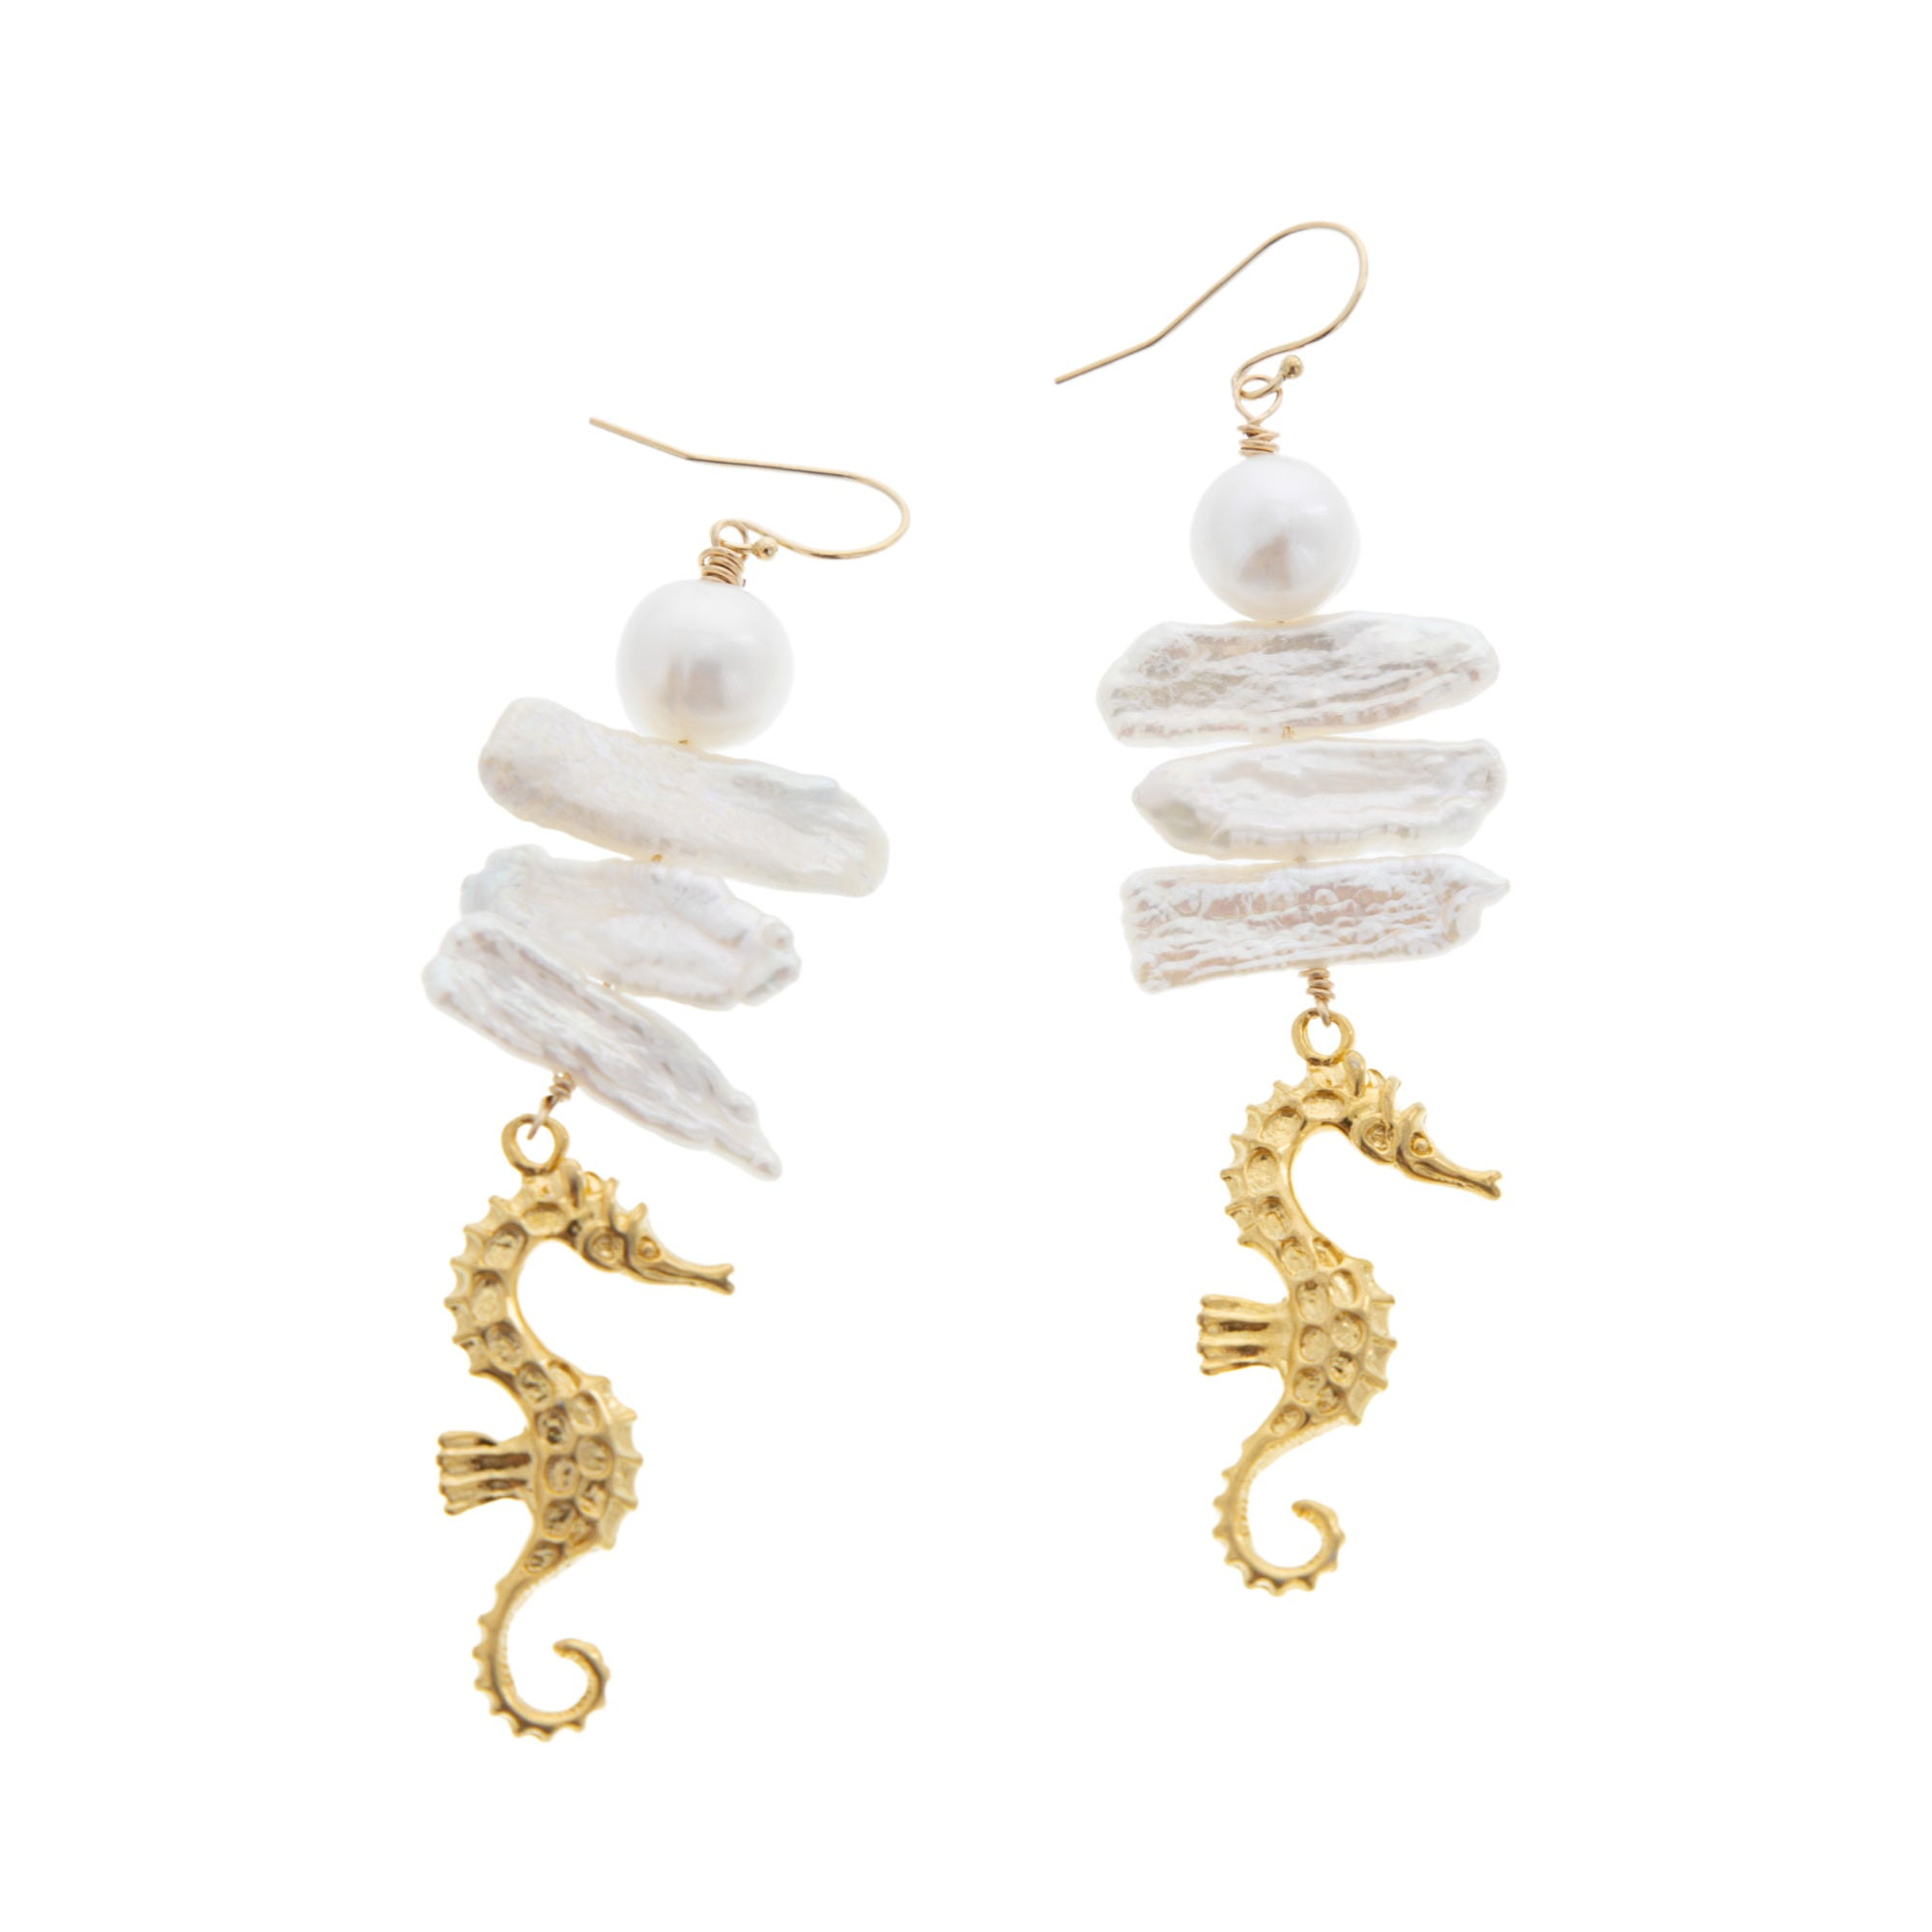 Hapuna Seahorse Earrings - 21 Degrees North Designs